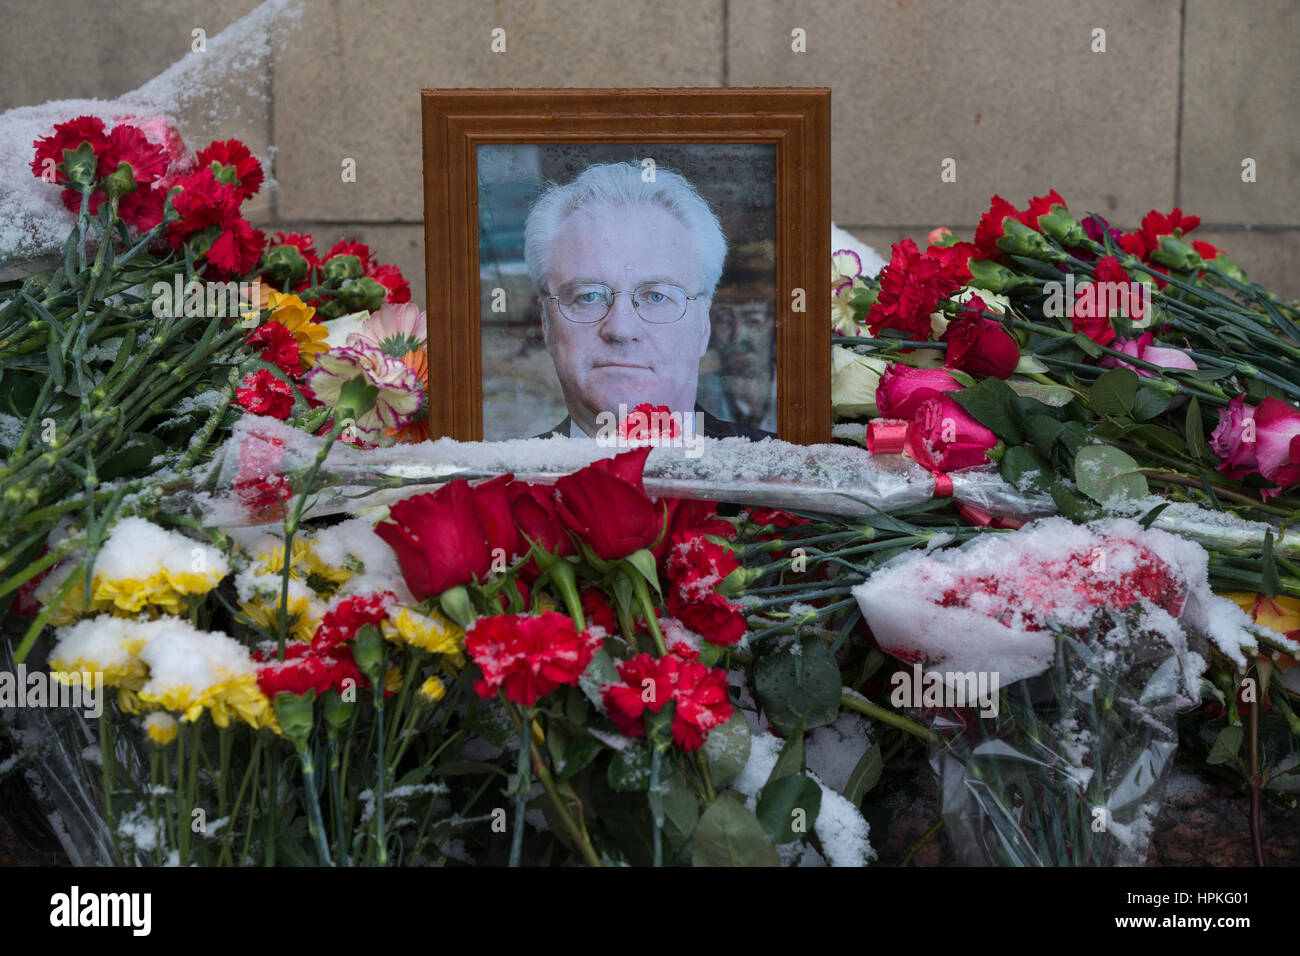 MOSCOW, RUSSIA - FEBRUARY 21, 2017: Flowers outside the offices of Russia's Ministry of Foreign Affairs in memory - Stock Image